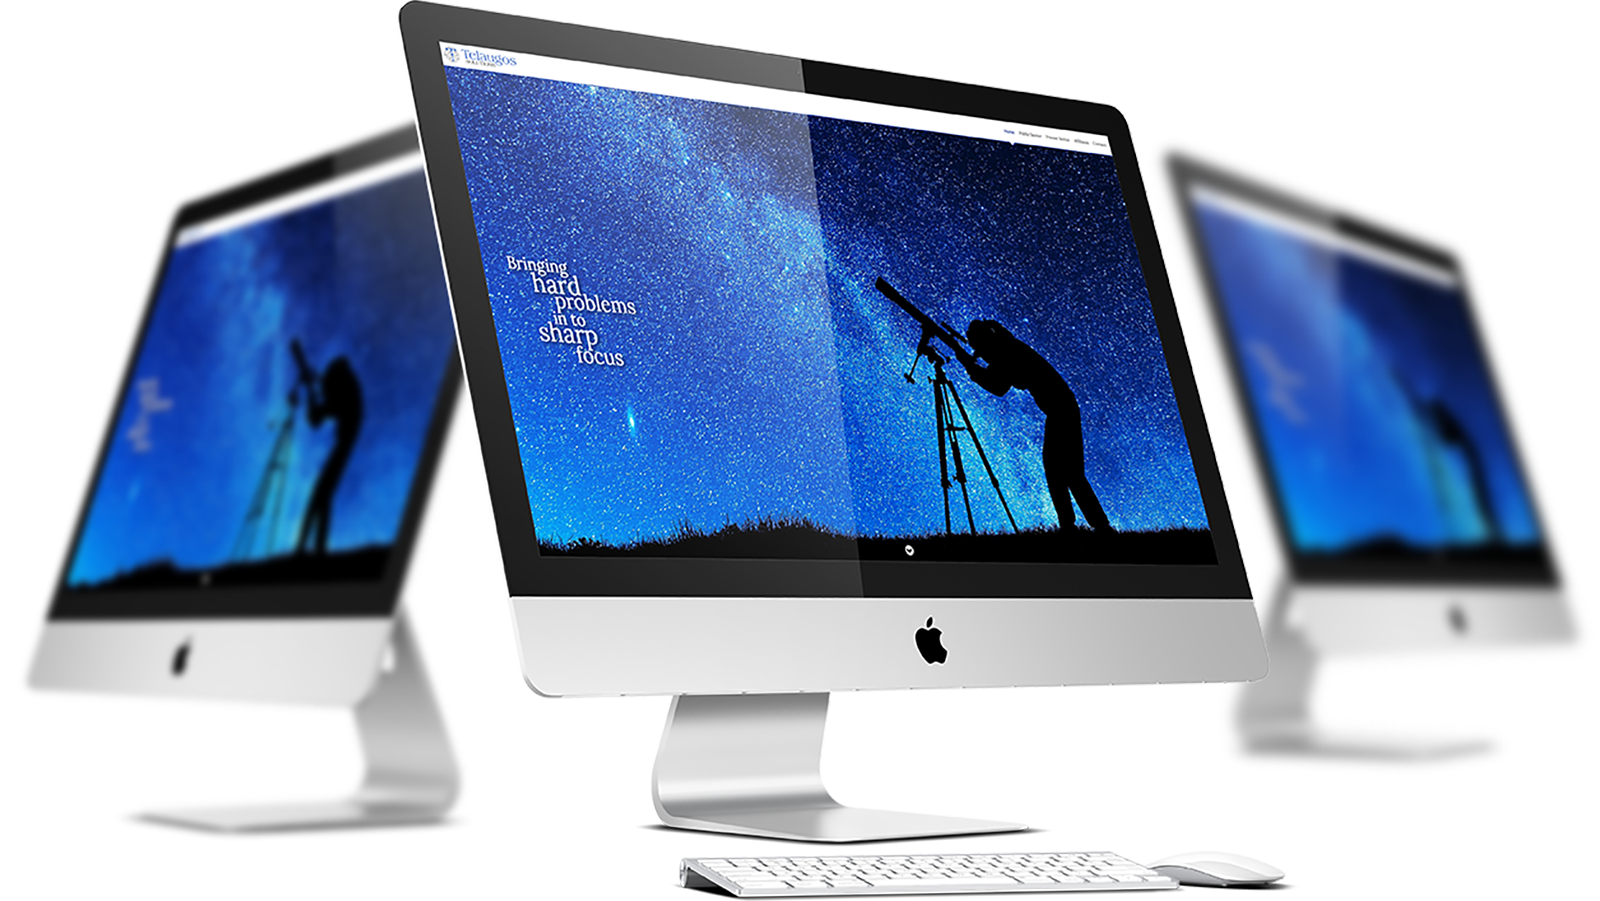 Telaugos Solutions: Company Website Home page on 3 Apple iMacs.